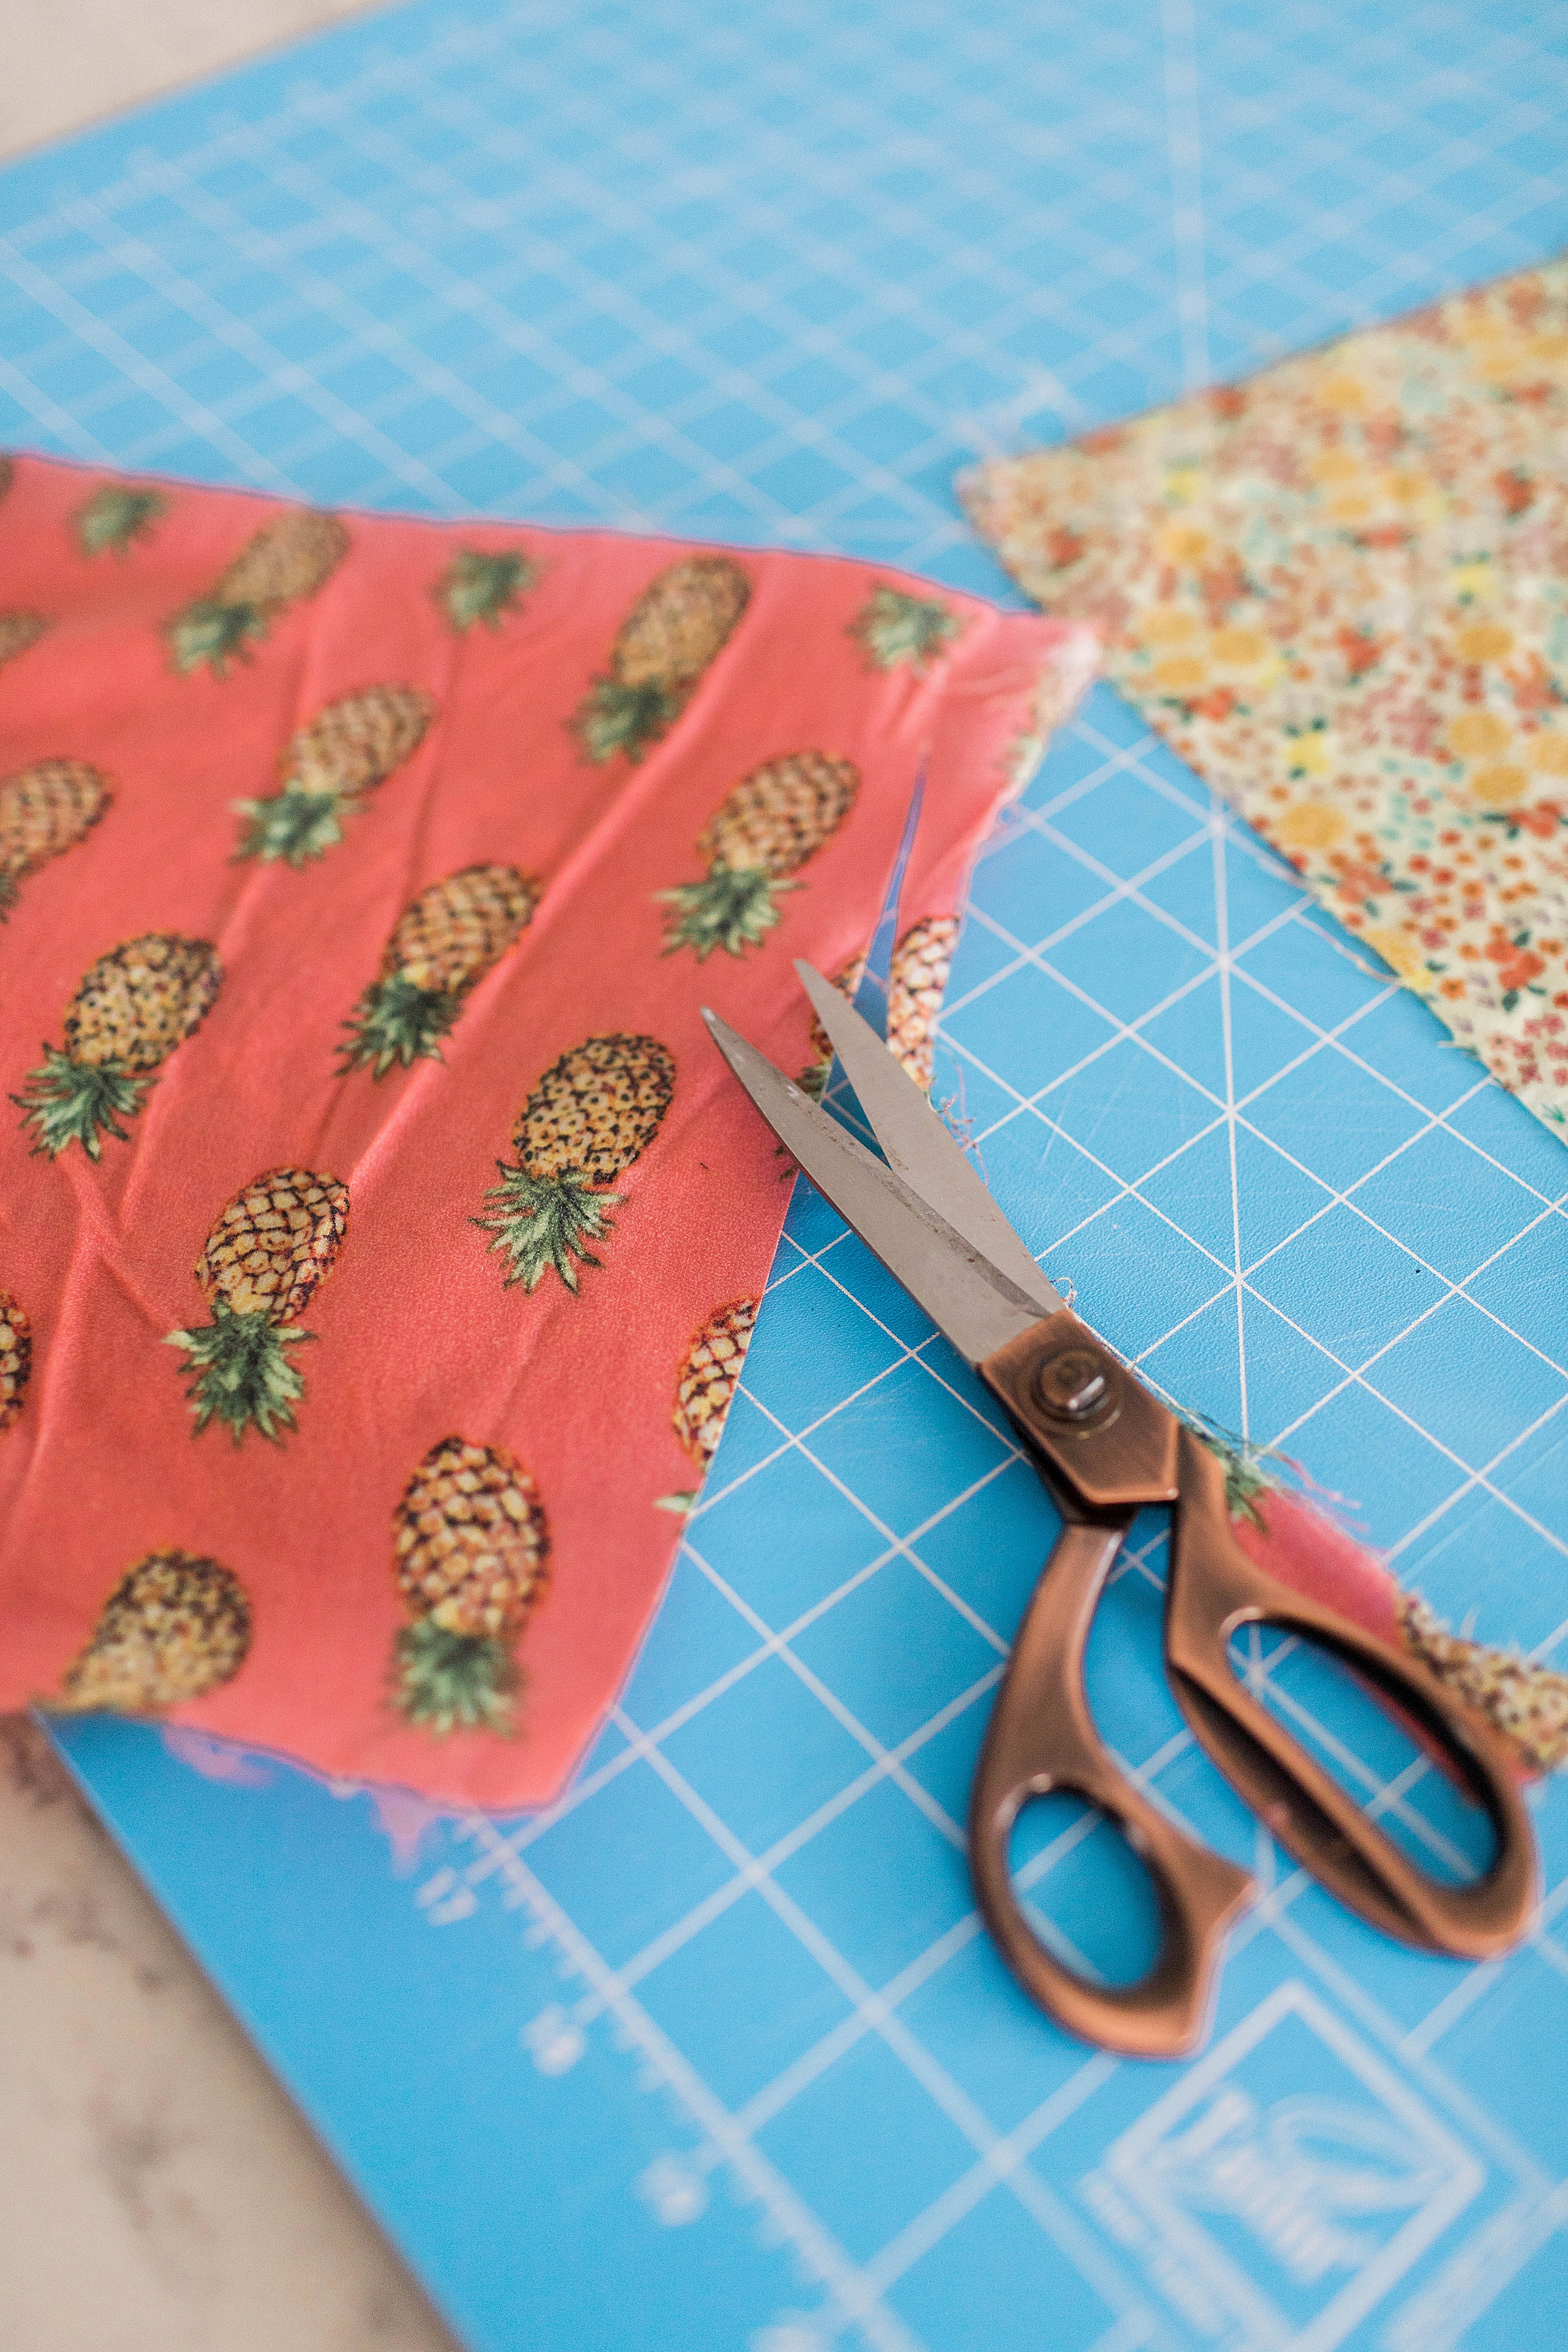 How to Make Reusable Beeswax Food Wraps / How to Make Your Own DIY Beeswax Wraps / Sustainable Living / How to Style a Yellow Sweater / How to Wear White Pants - Sunshine Style, Florida Fashion and Lifestyle Blog